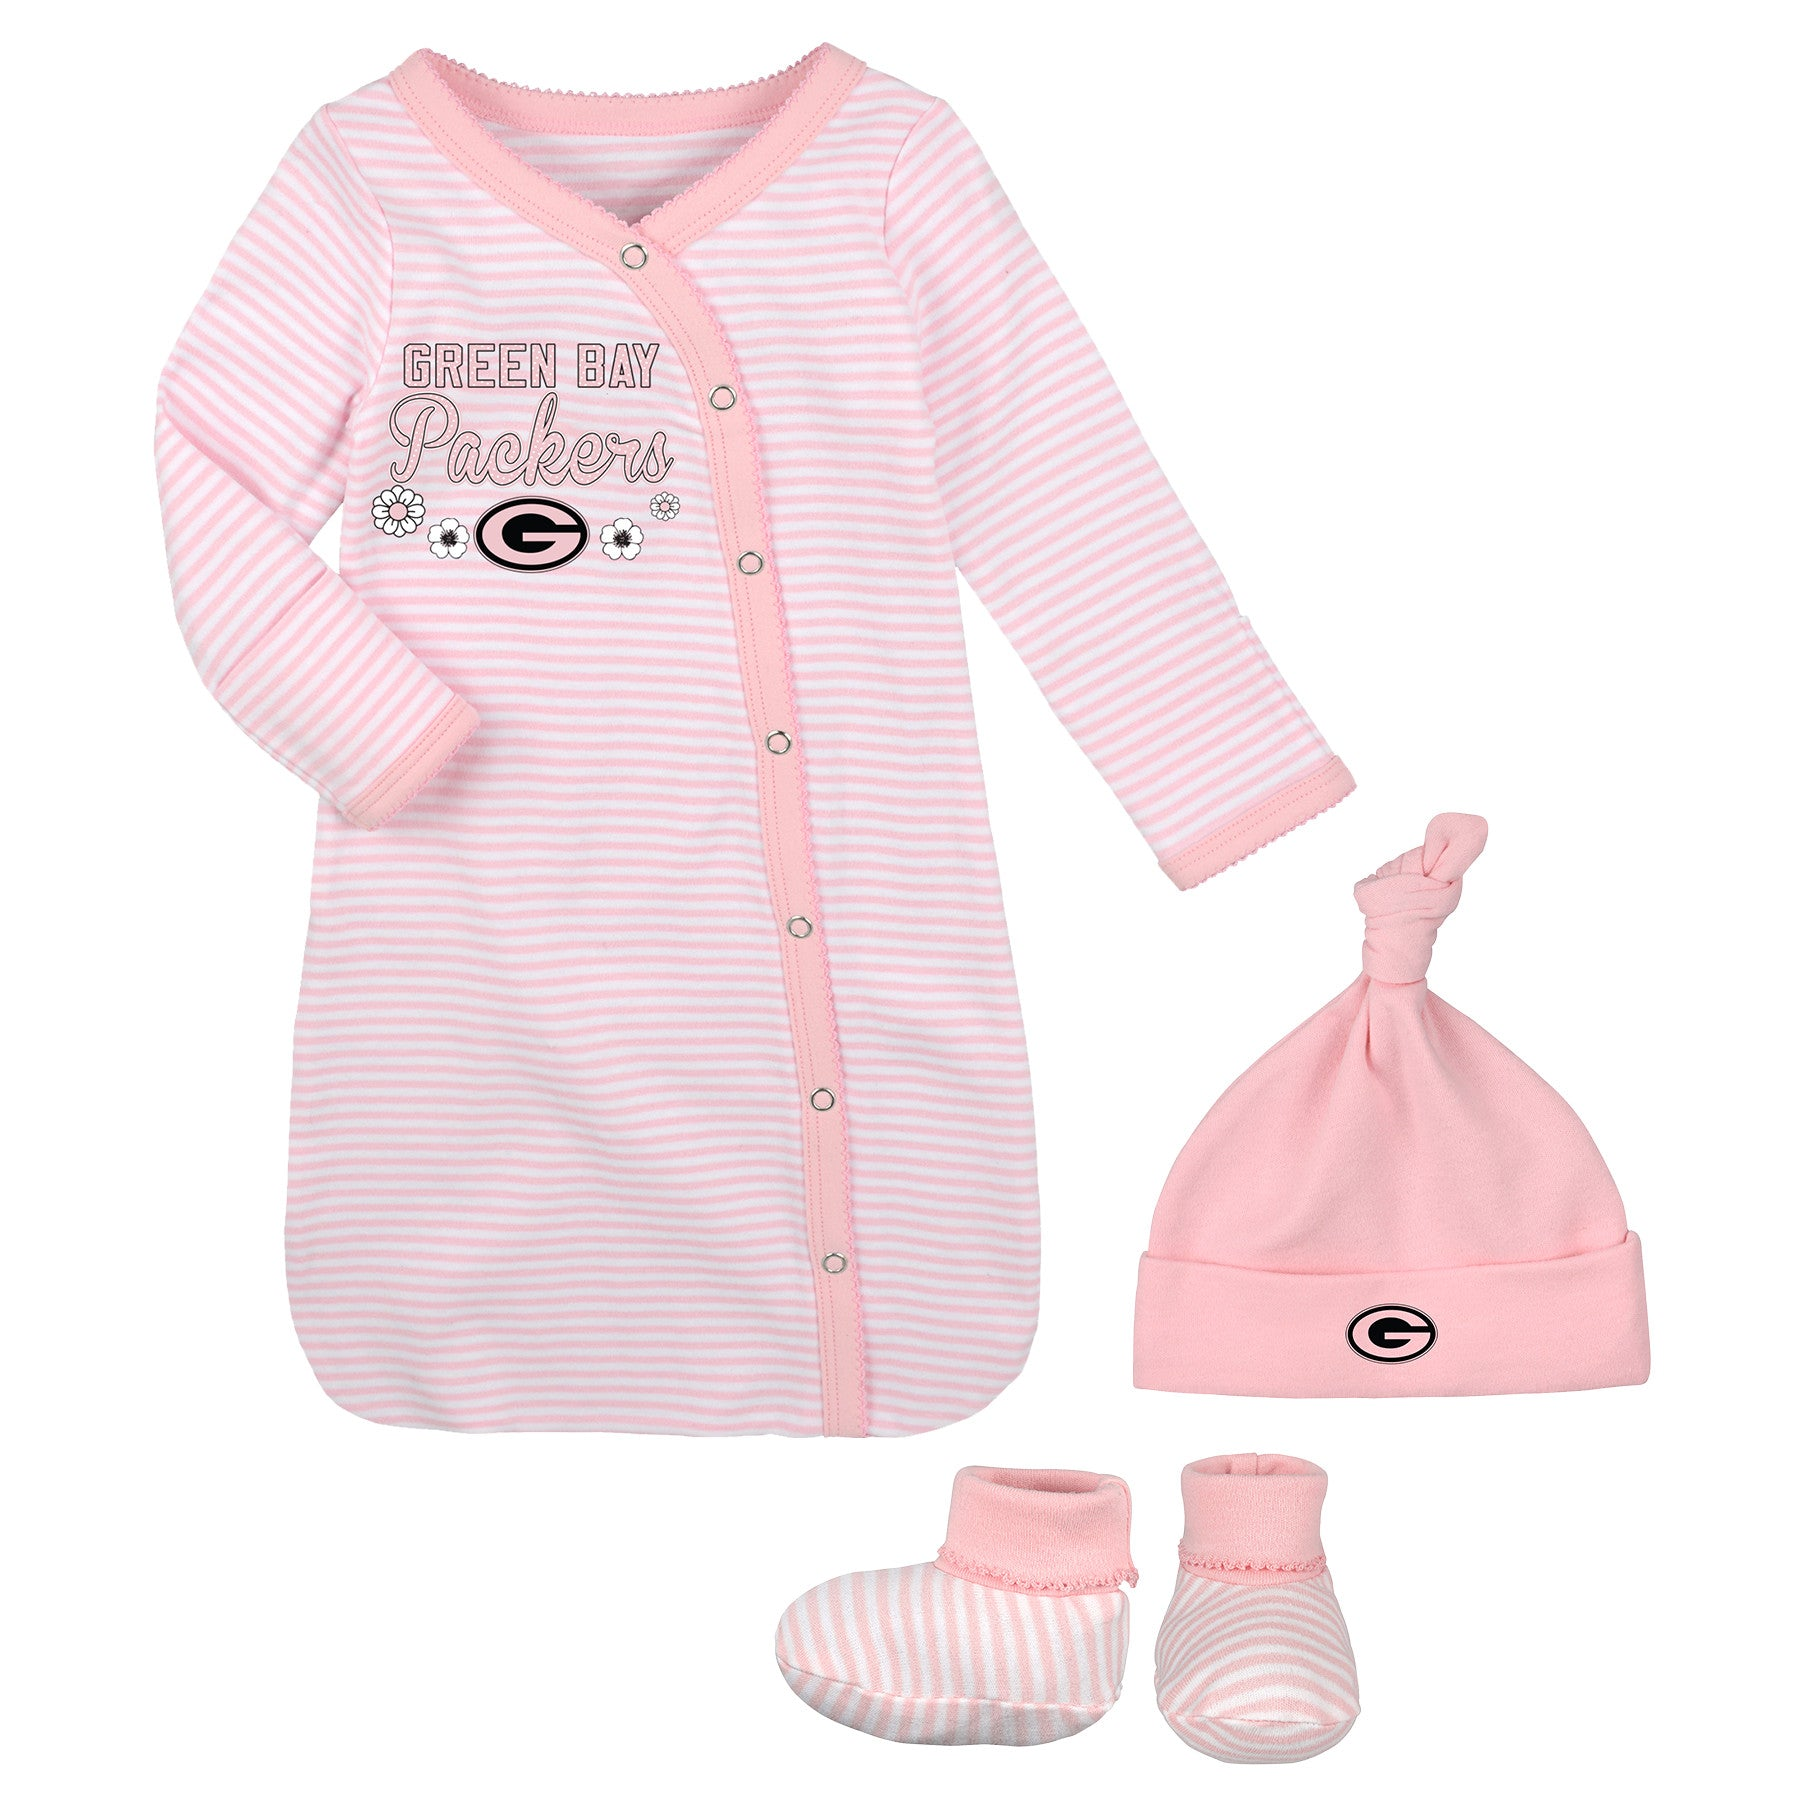 Green Bay Packers Baby Clothes BabyFans – babyfans